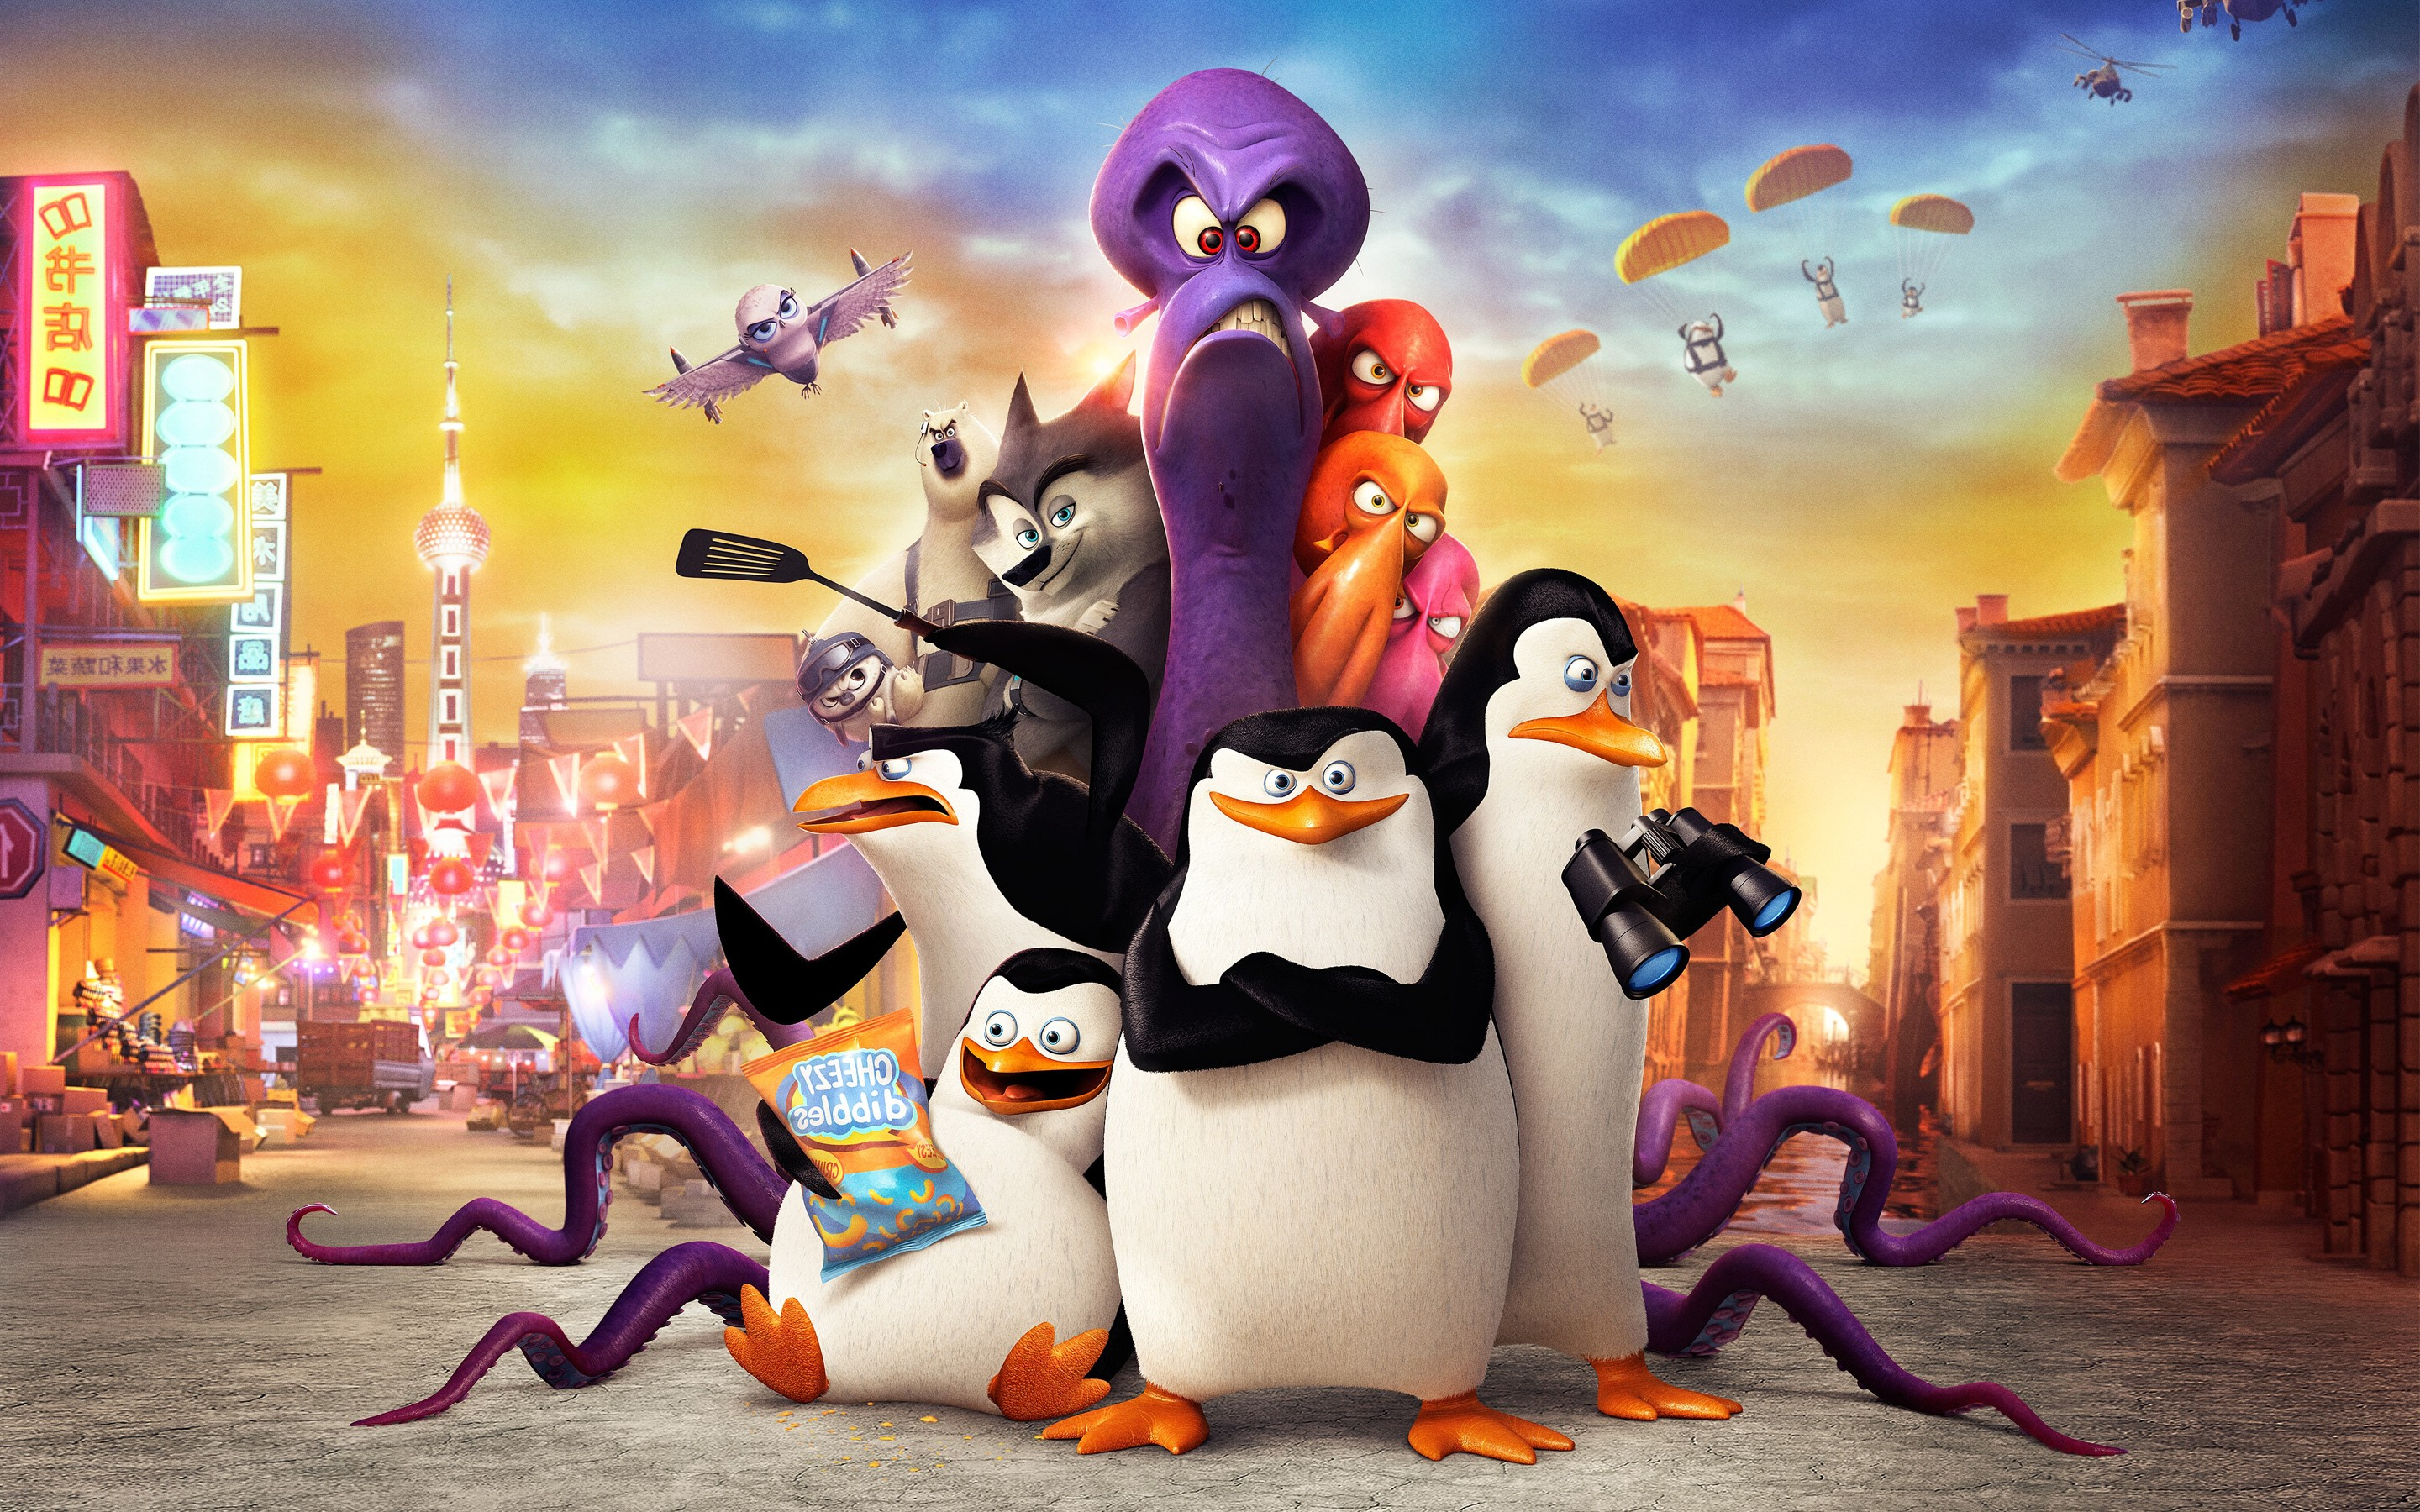 Girls Wallpapers 480x800 Penguins Of Madagascar Movie Hd Movies 4k Wallpapers